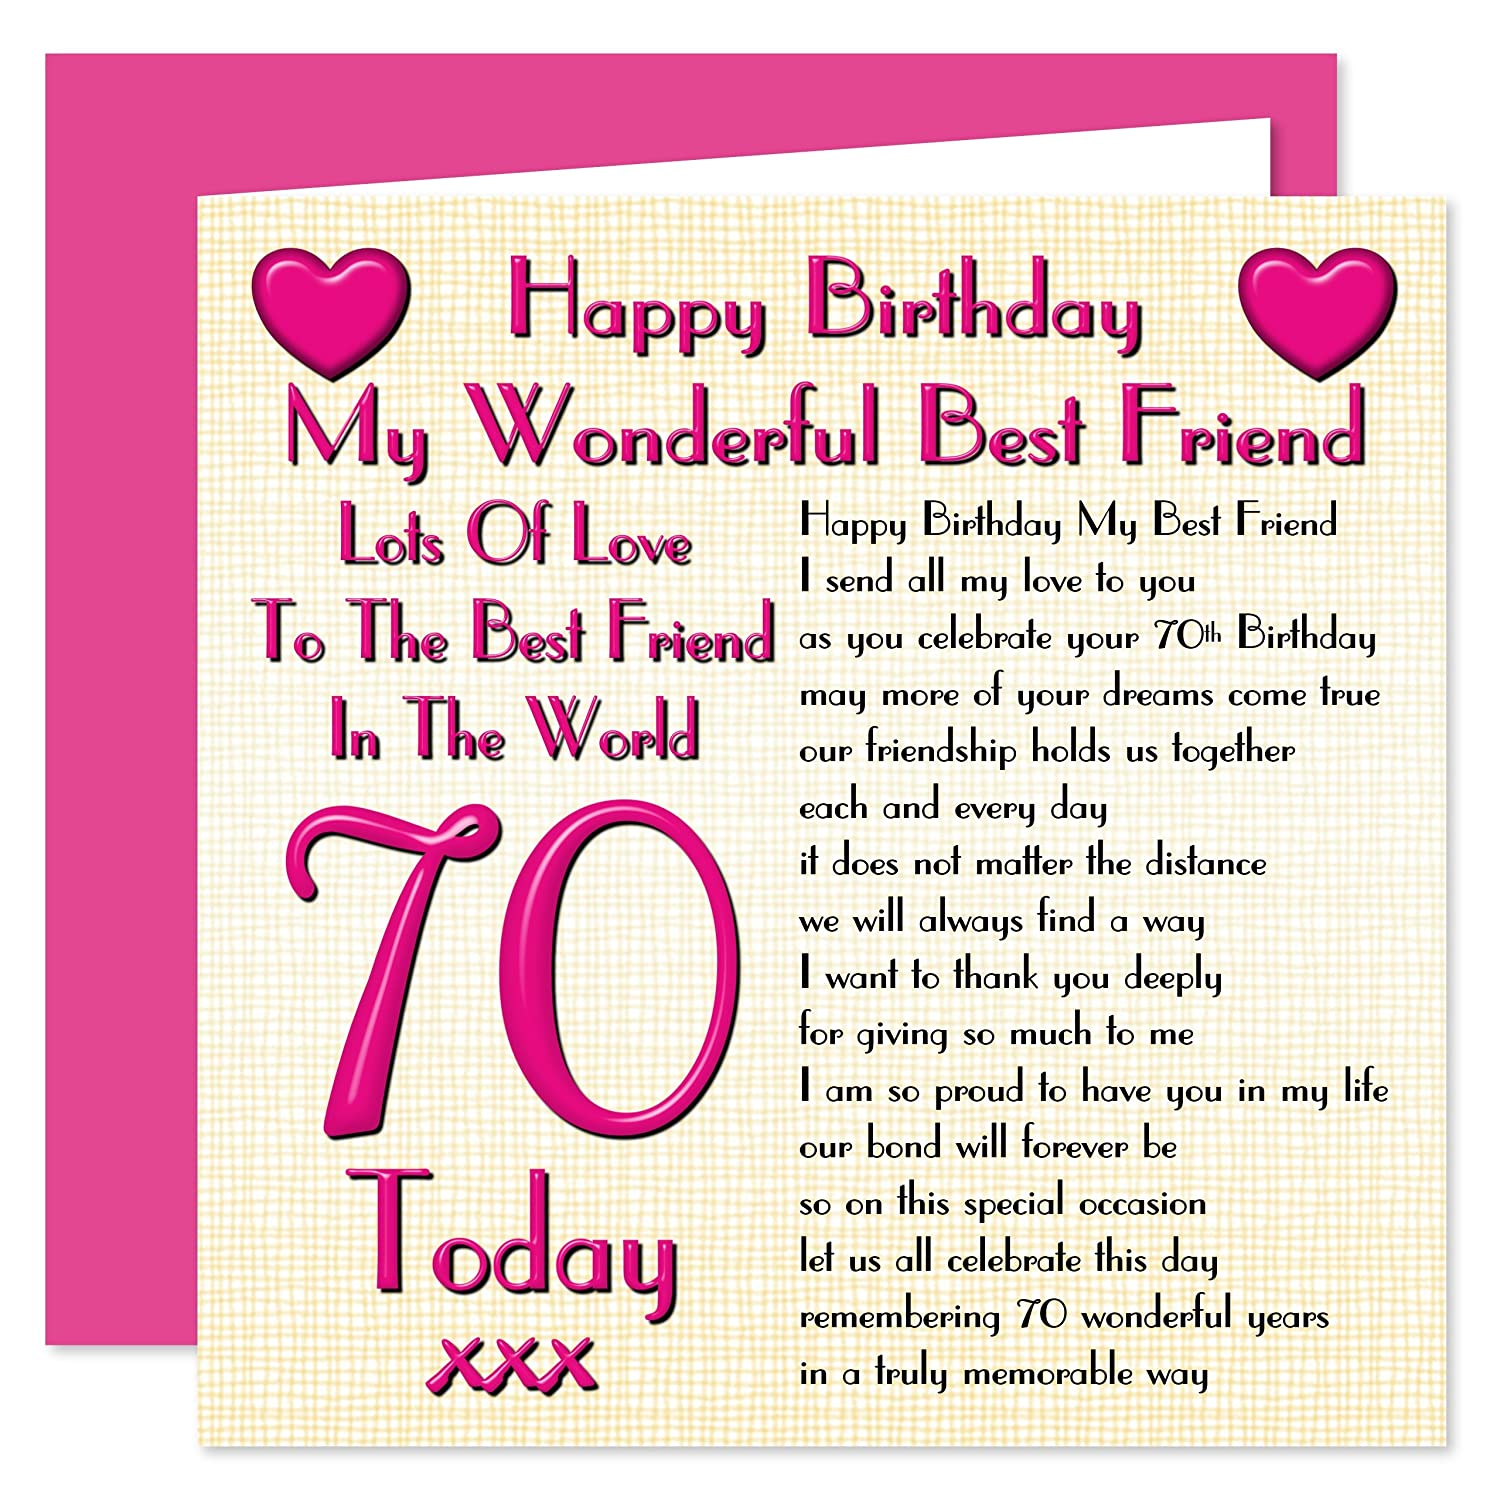 Happy 70th birthday to a wonderful friend with special wishes 70 best friend 70th happy birthday card lots of love to the best friend in the bookmarktalkfo Choice Image